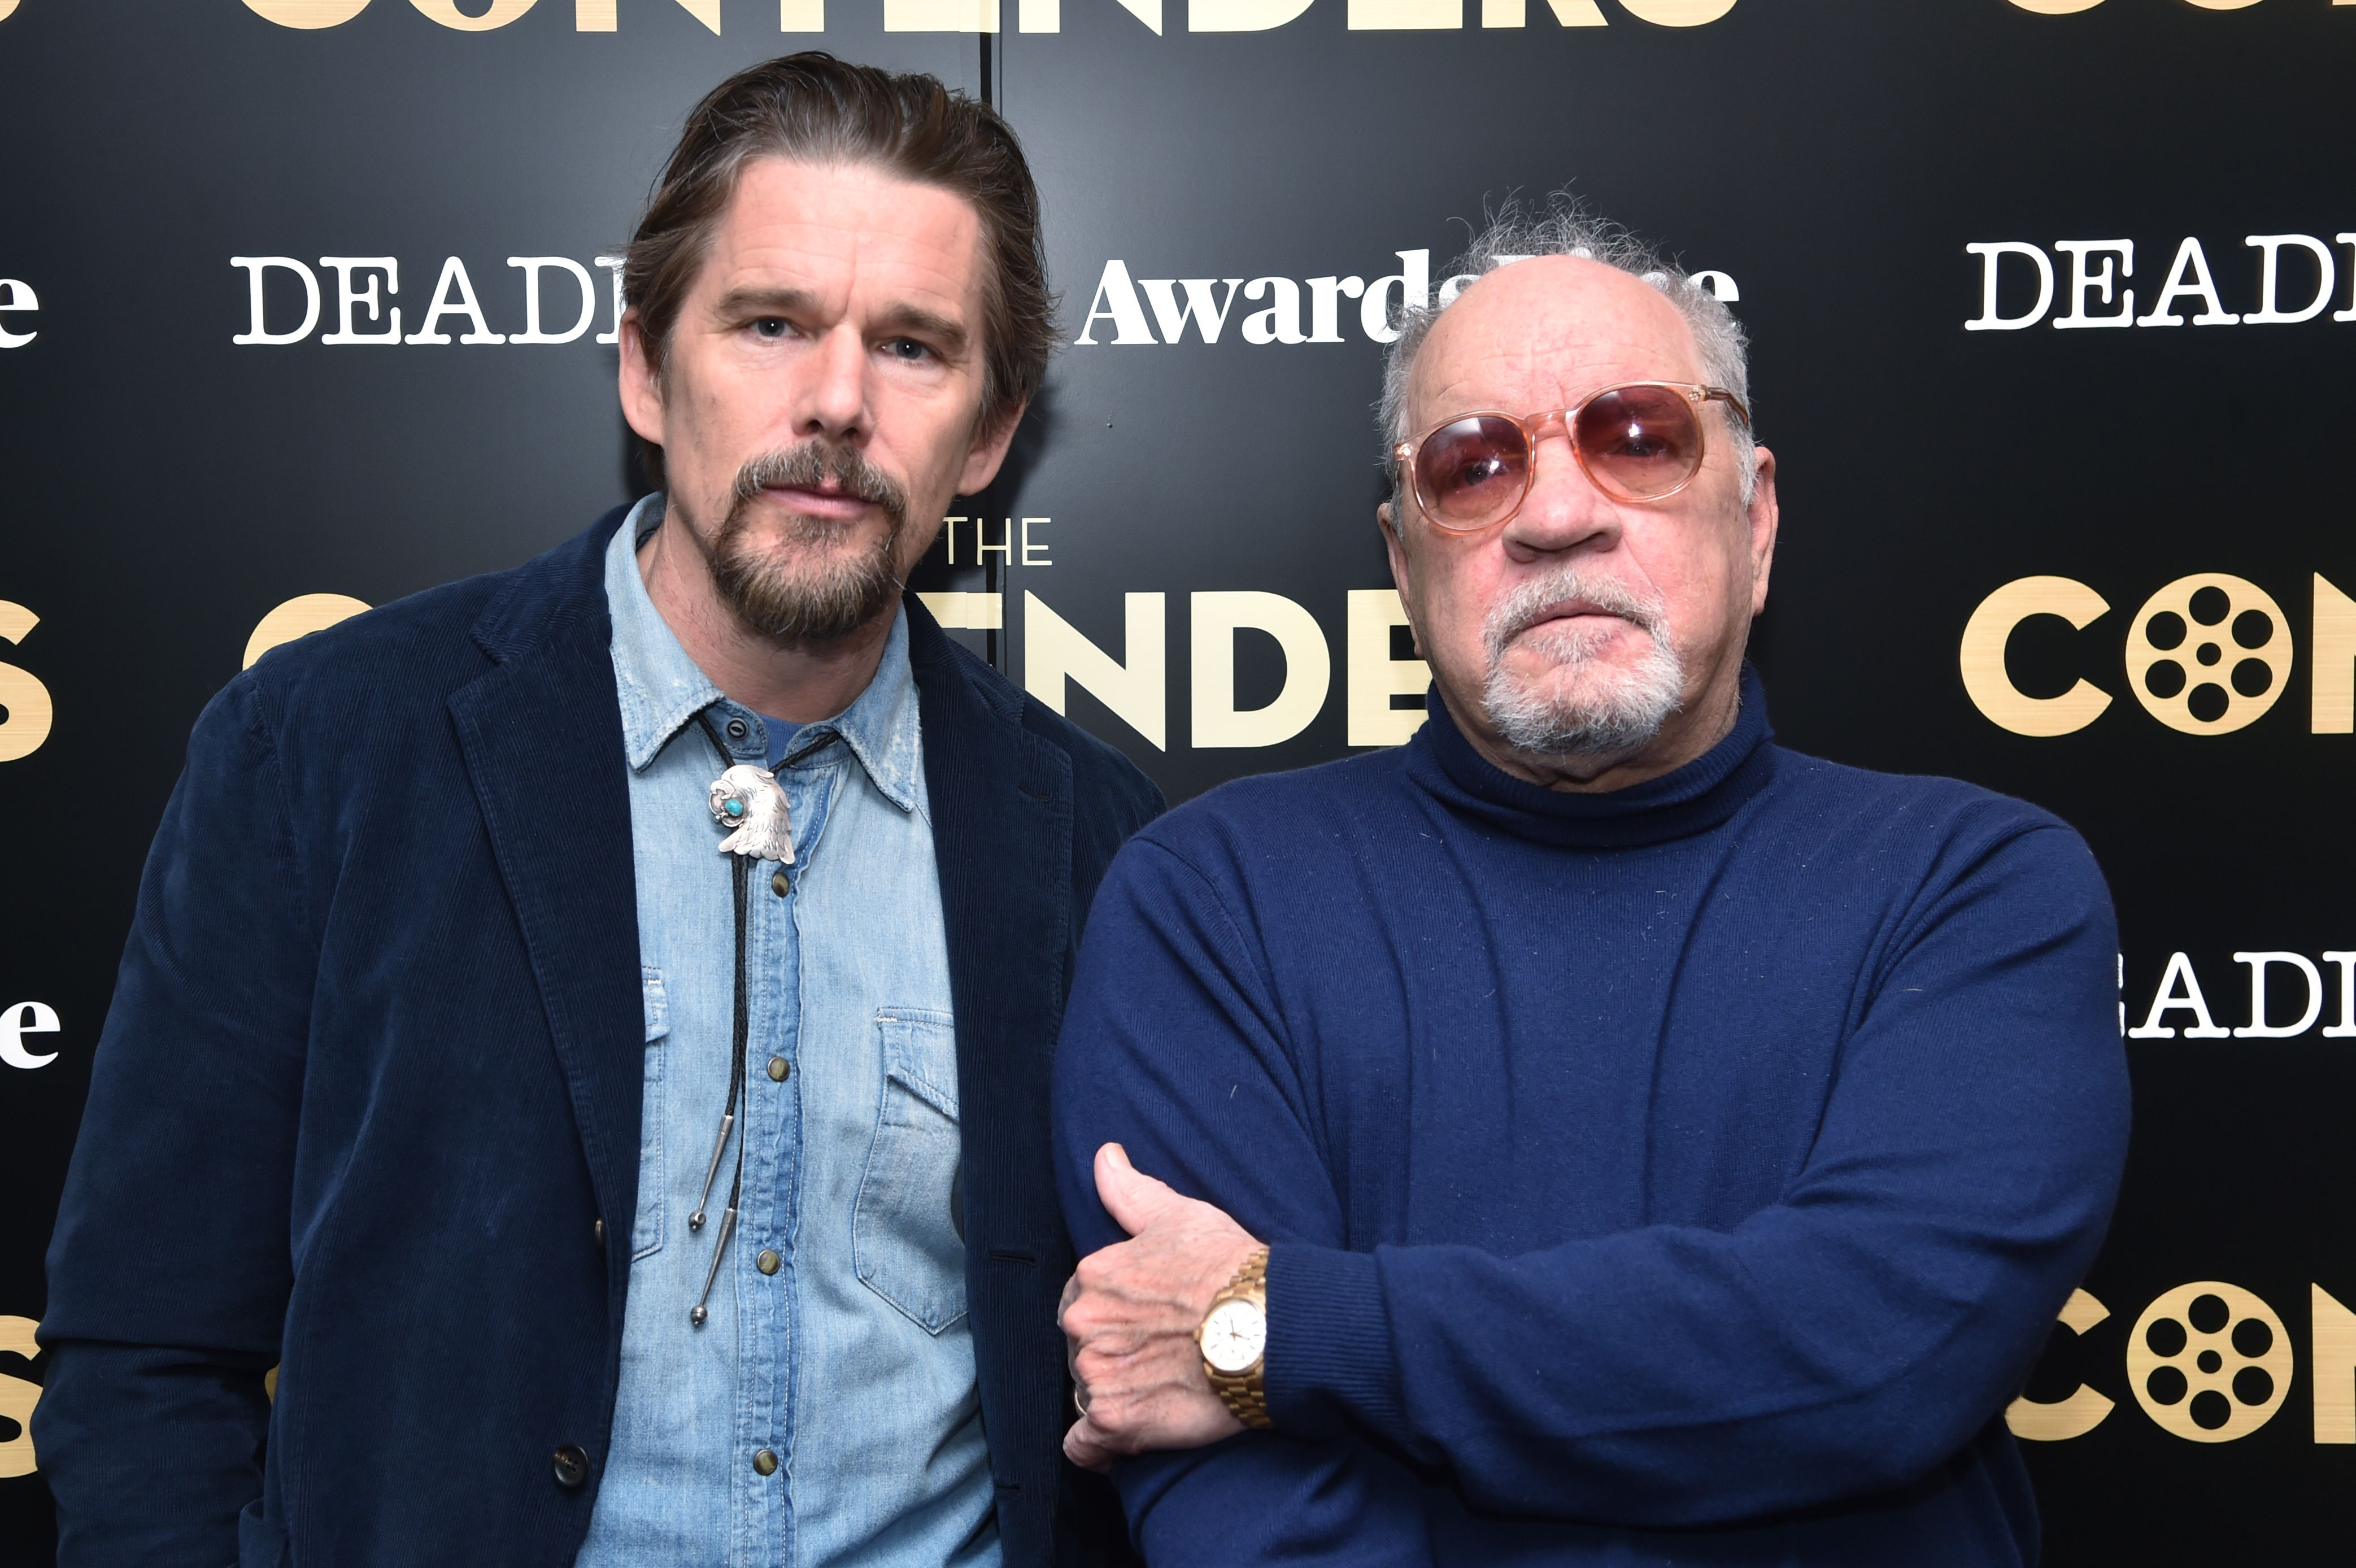 Paul Schrader Shades the Oscars, Reveals What He Told Ethan Hawke After Best Actor Snub